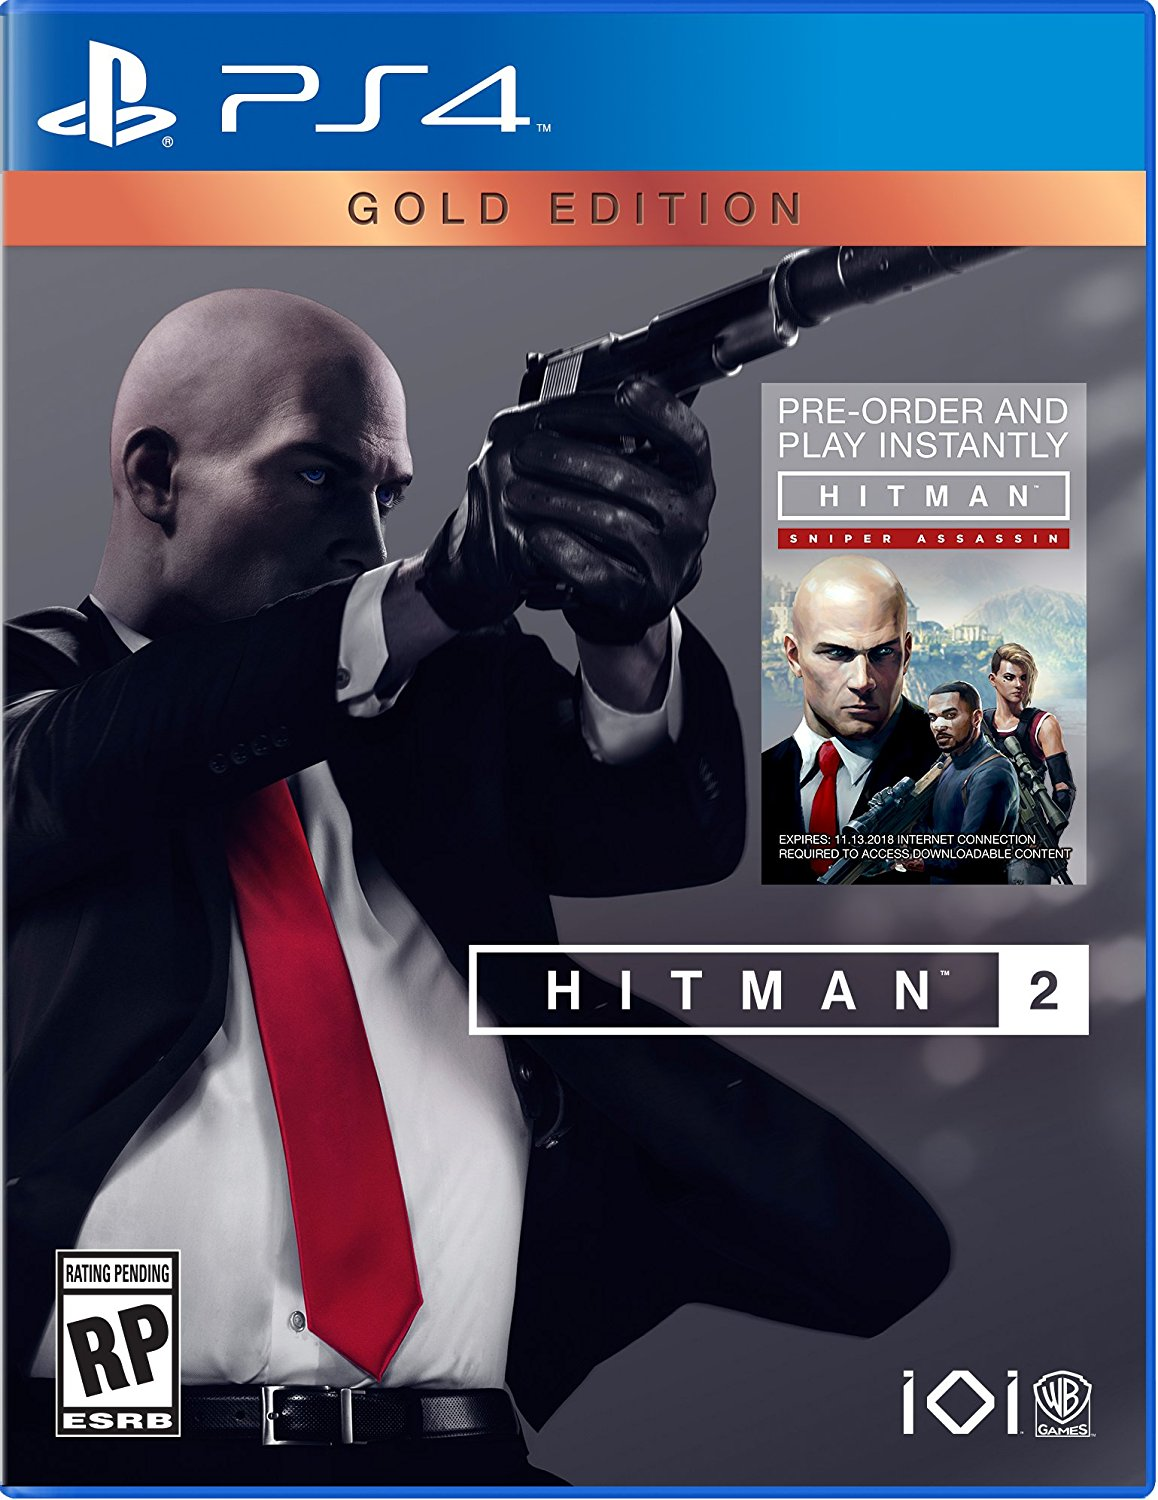 Wario64 On Twitter Hitman 2 Is Up For Preorder On Amazon Ps4